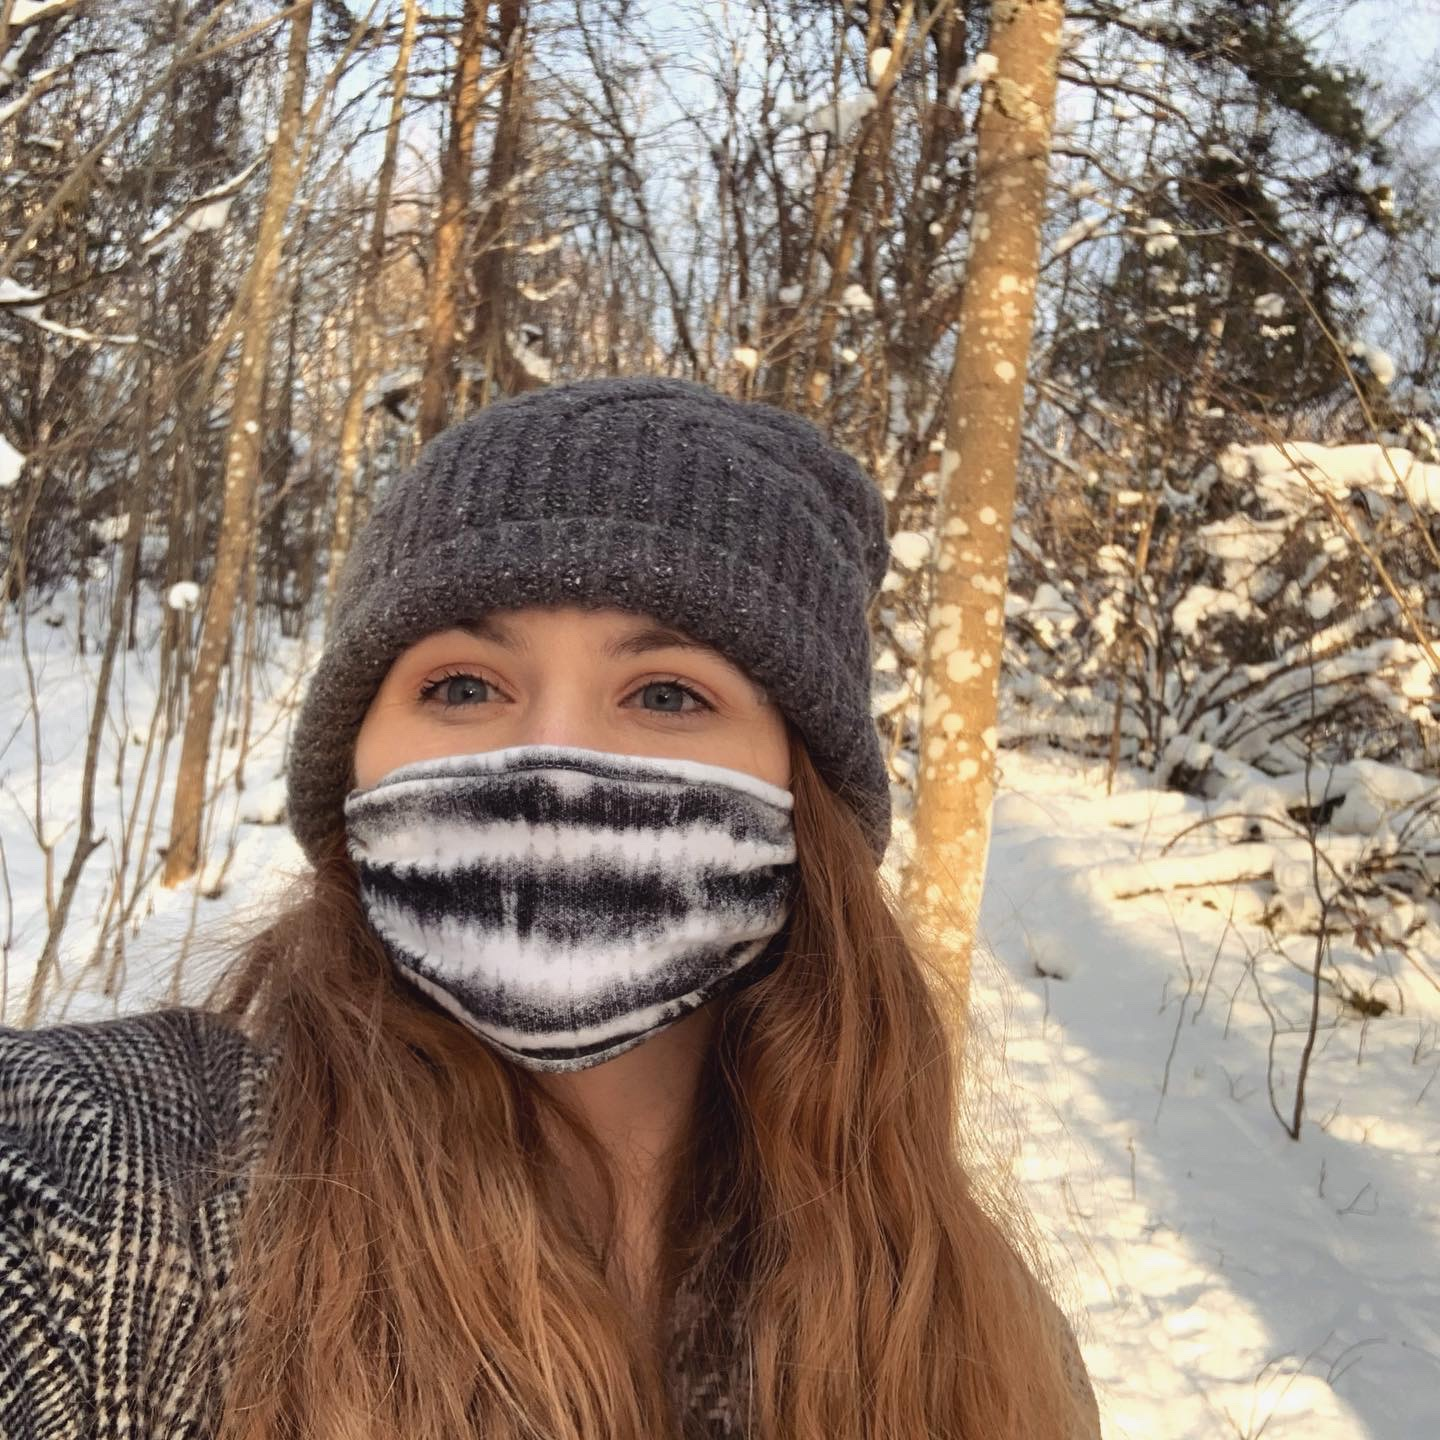 Girl wearing face mask and beanie near snow and trees during daytime